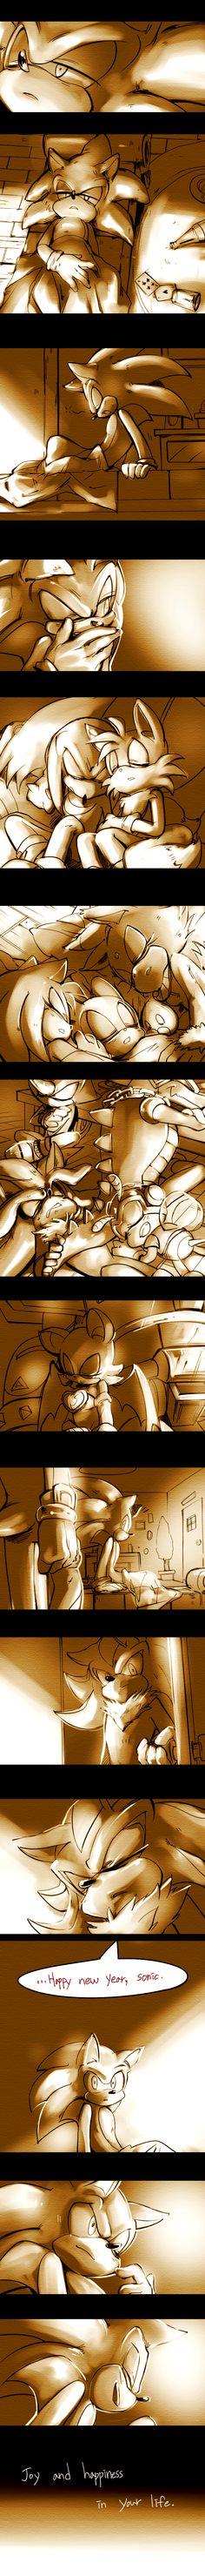 Happy new year! by Lenmeu on DeviantArt<< Silver with The Chaotix just seems right to me... I don't know. I just like this.